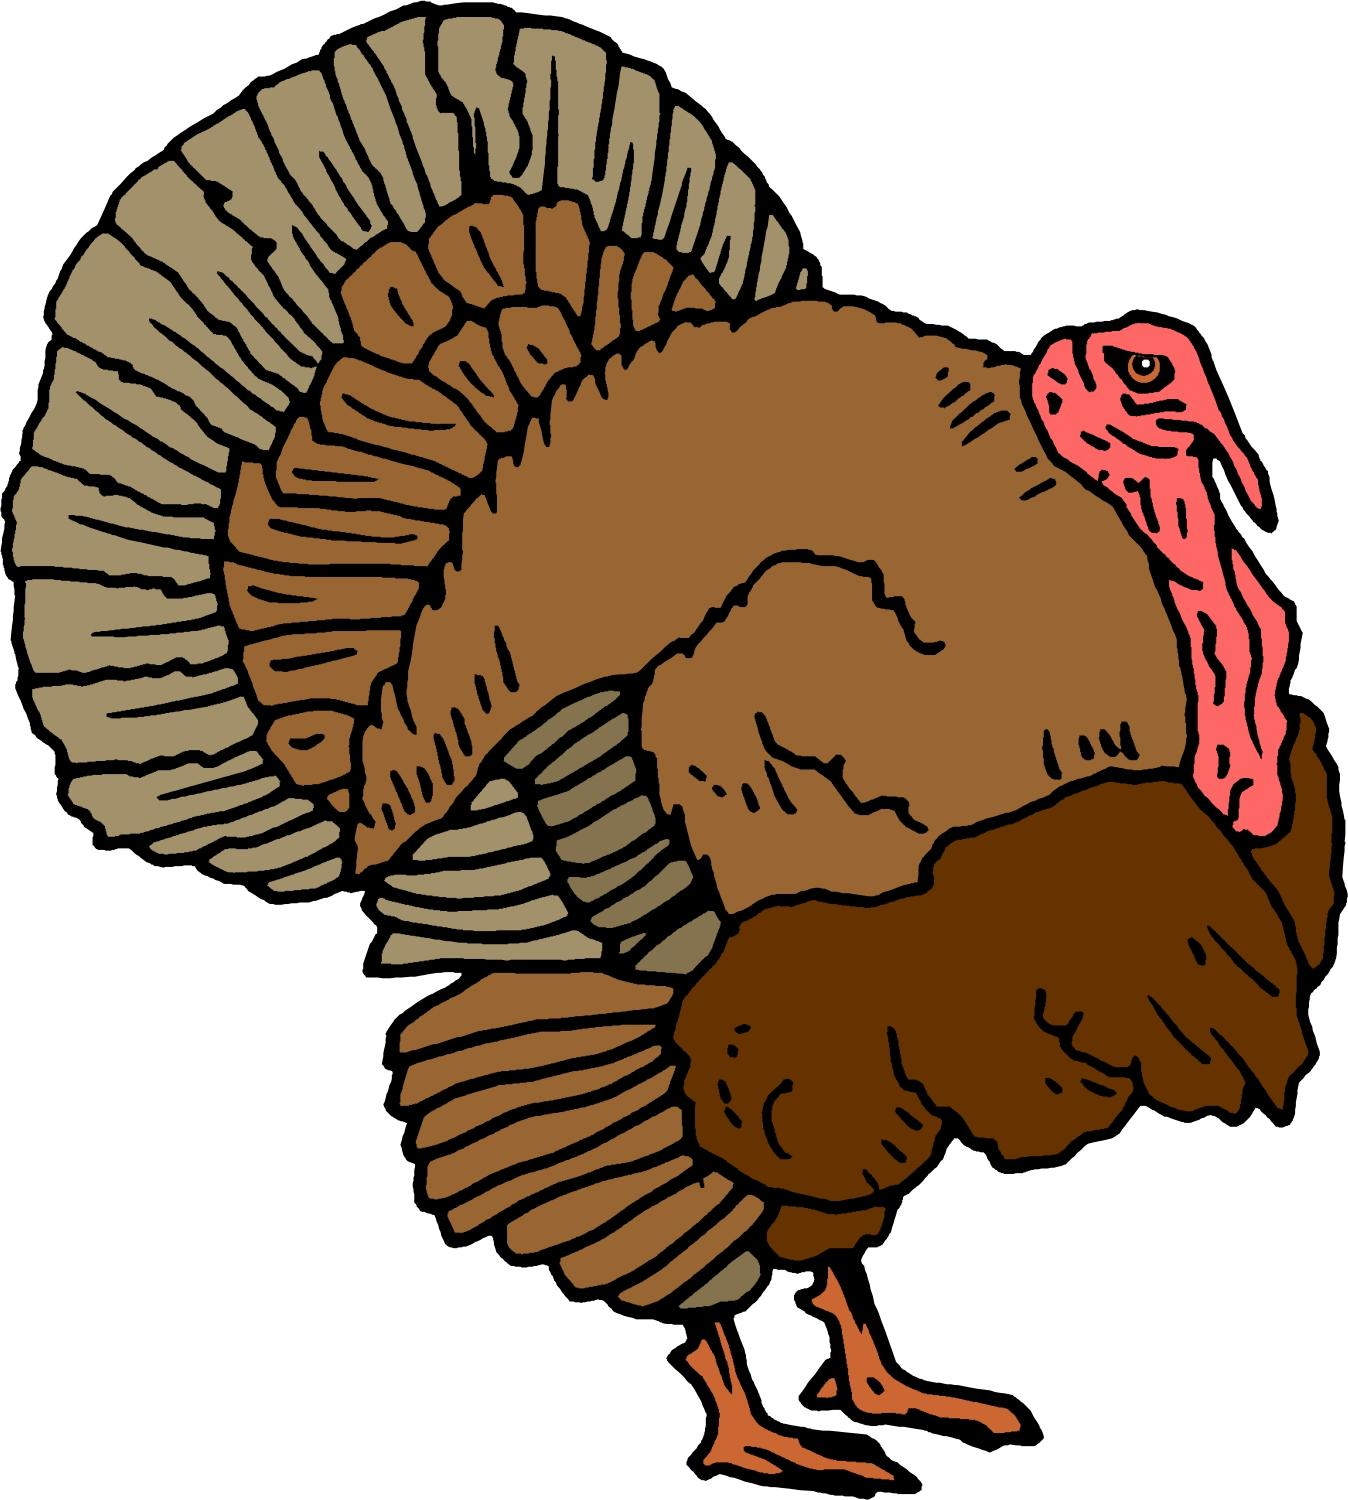 1348x1500 Unique Cartoon Turkey Animated Clip File Free